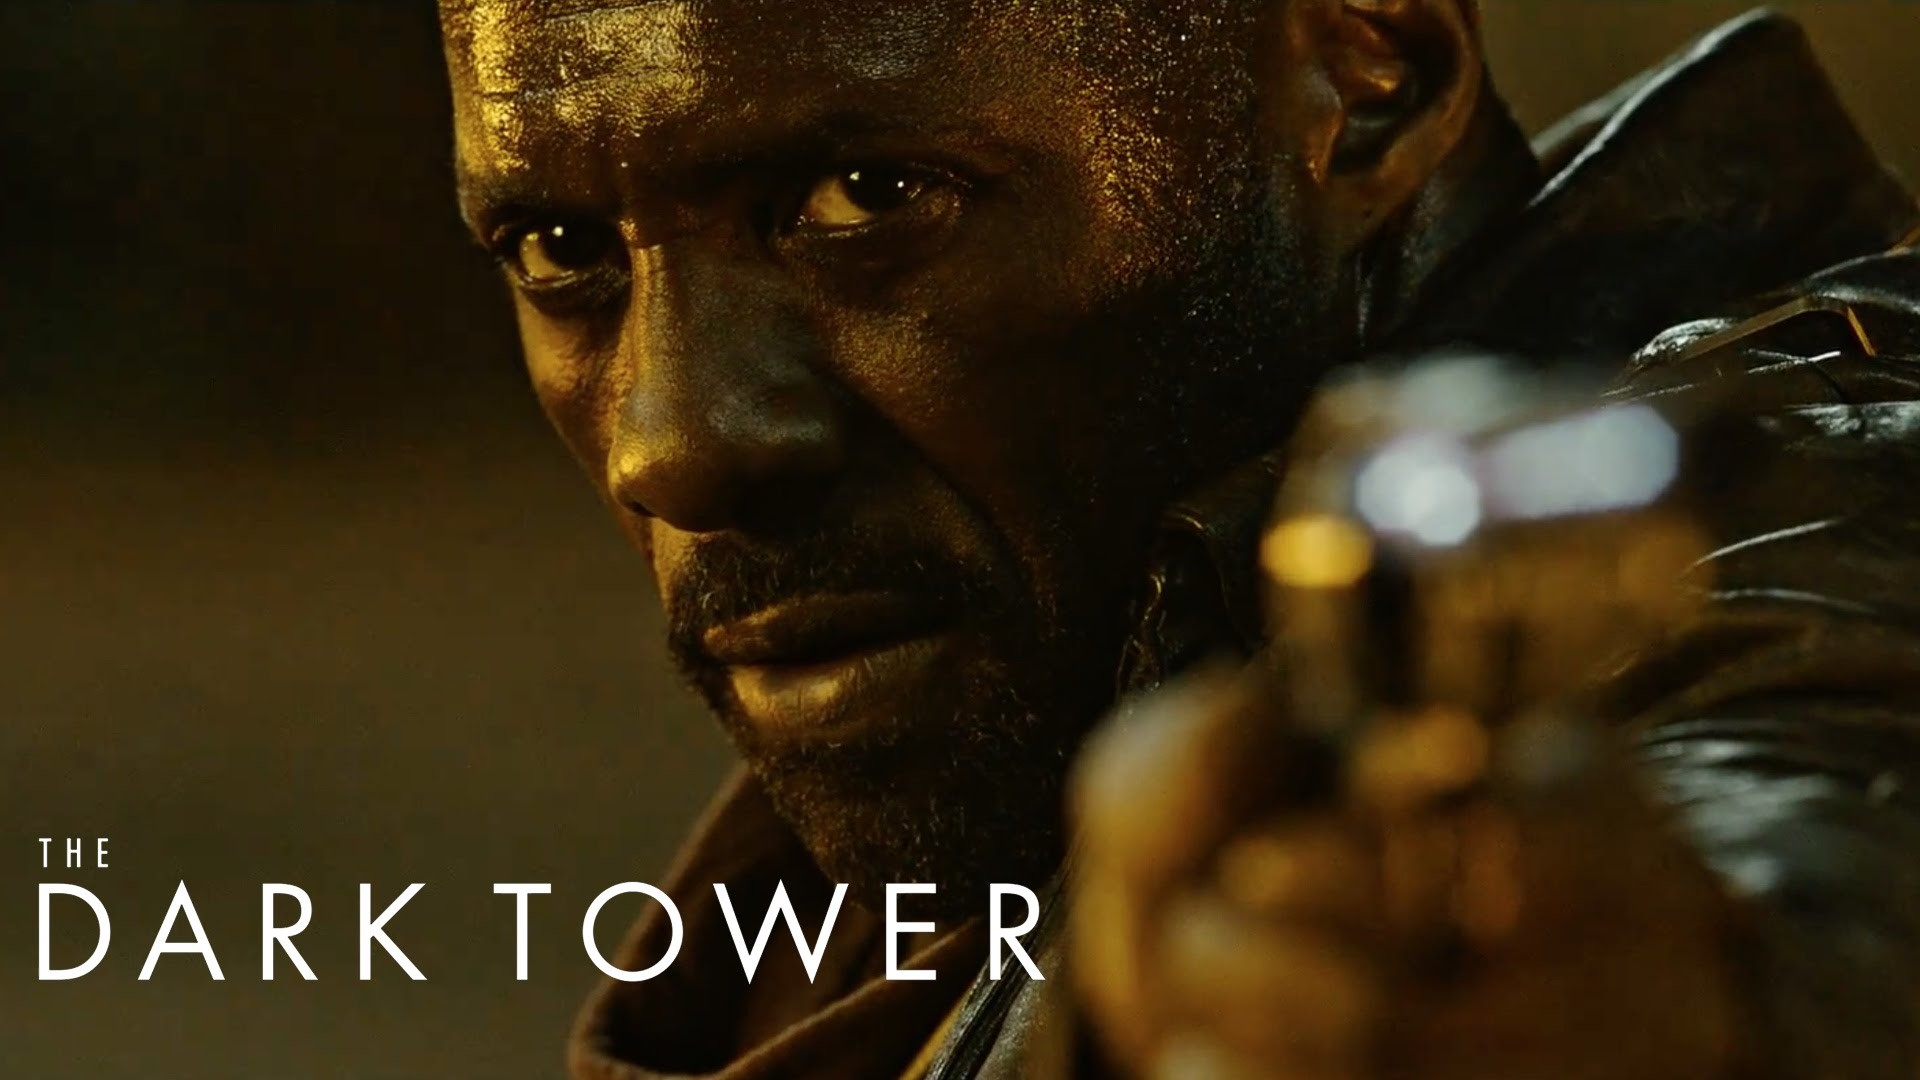 1920x1080 The Dark Tower - Official Trailer